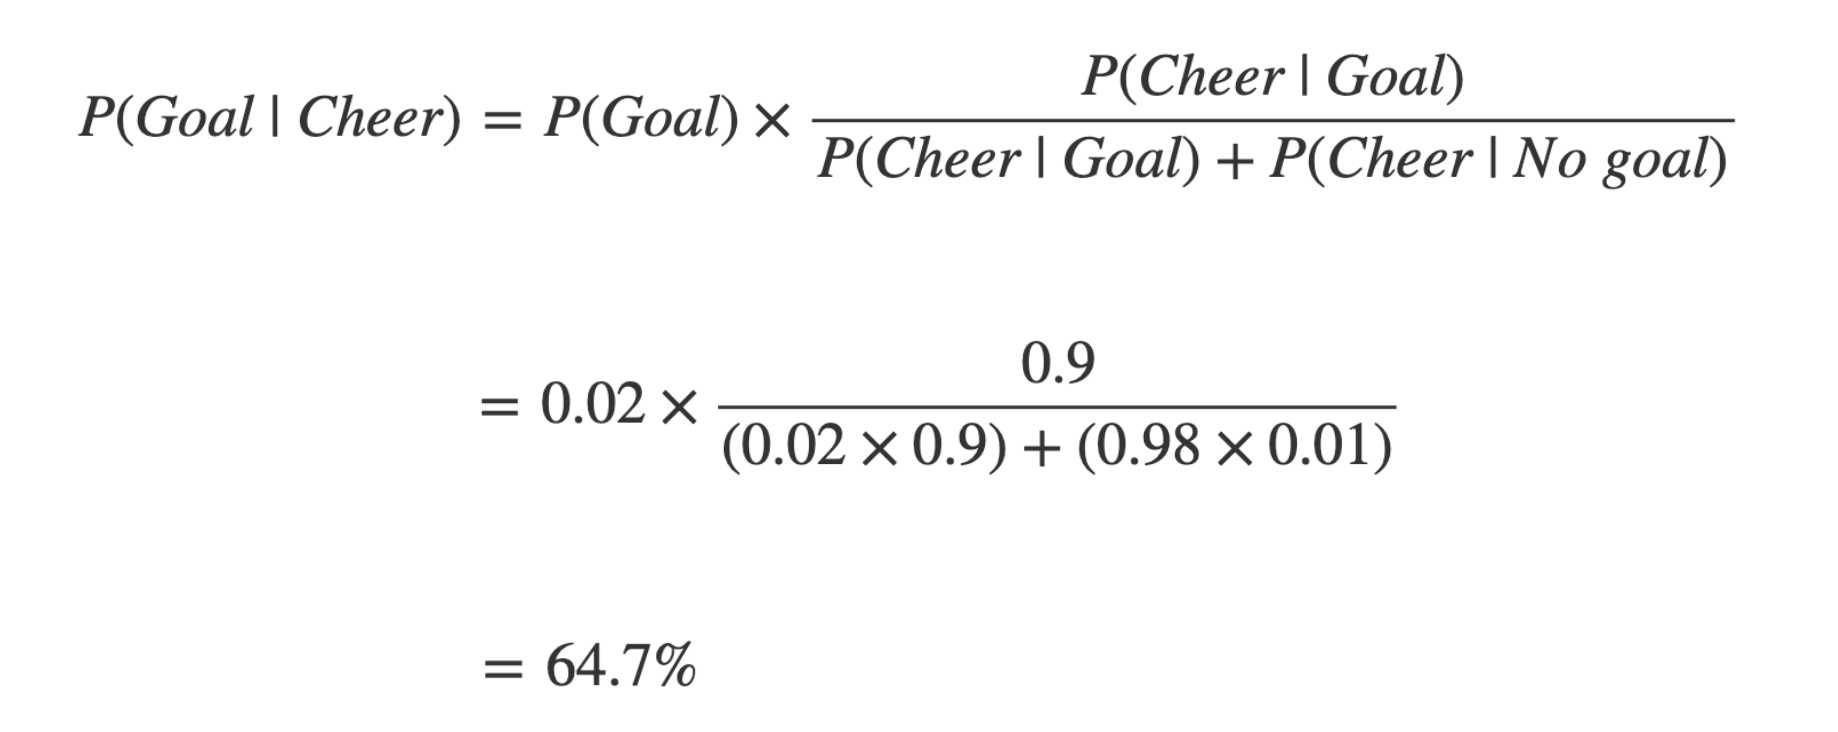 Probability of goal, given cheering equals prior probability of goal times probability of cheering given goal, divided by probability of cheering given goal plus probability of cheering given no goal. Equals 0.02 times 0.9 over 0.02 times 0.9 plus 0.98 times 0.01 = 64.7 percent